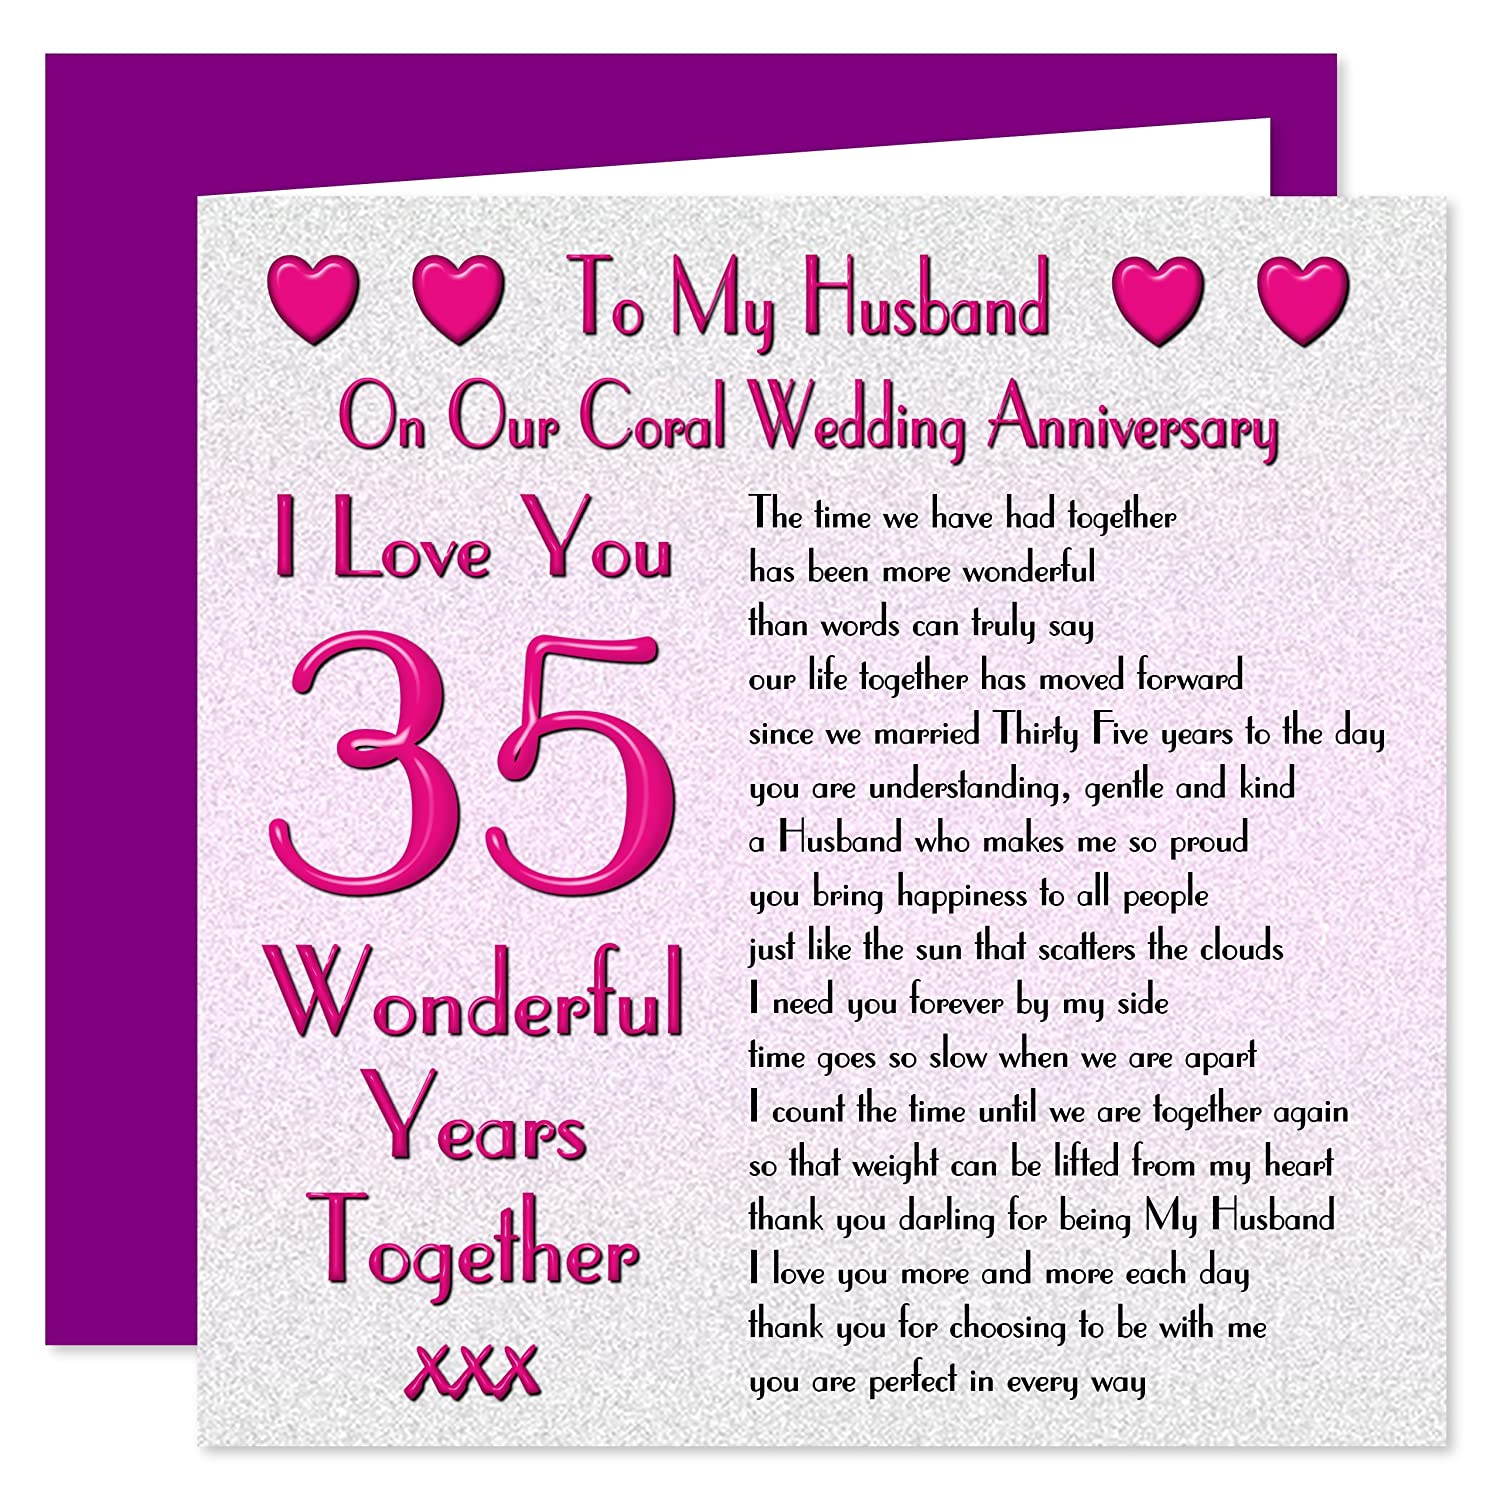 My Husband 35th Wedding Anniversary Card - On Our Coral Anniversary ...